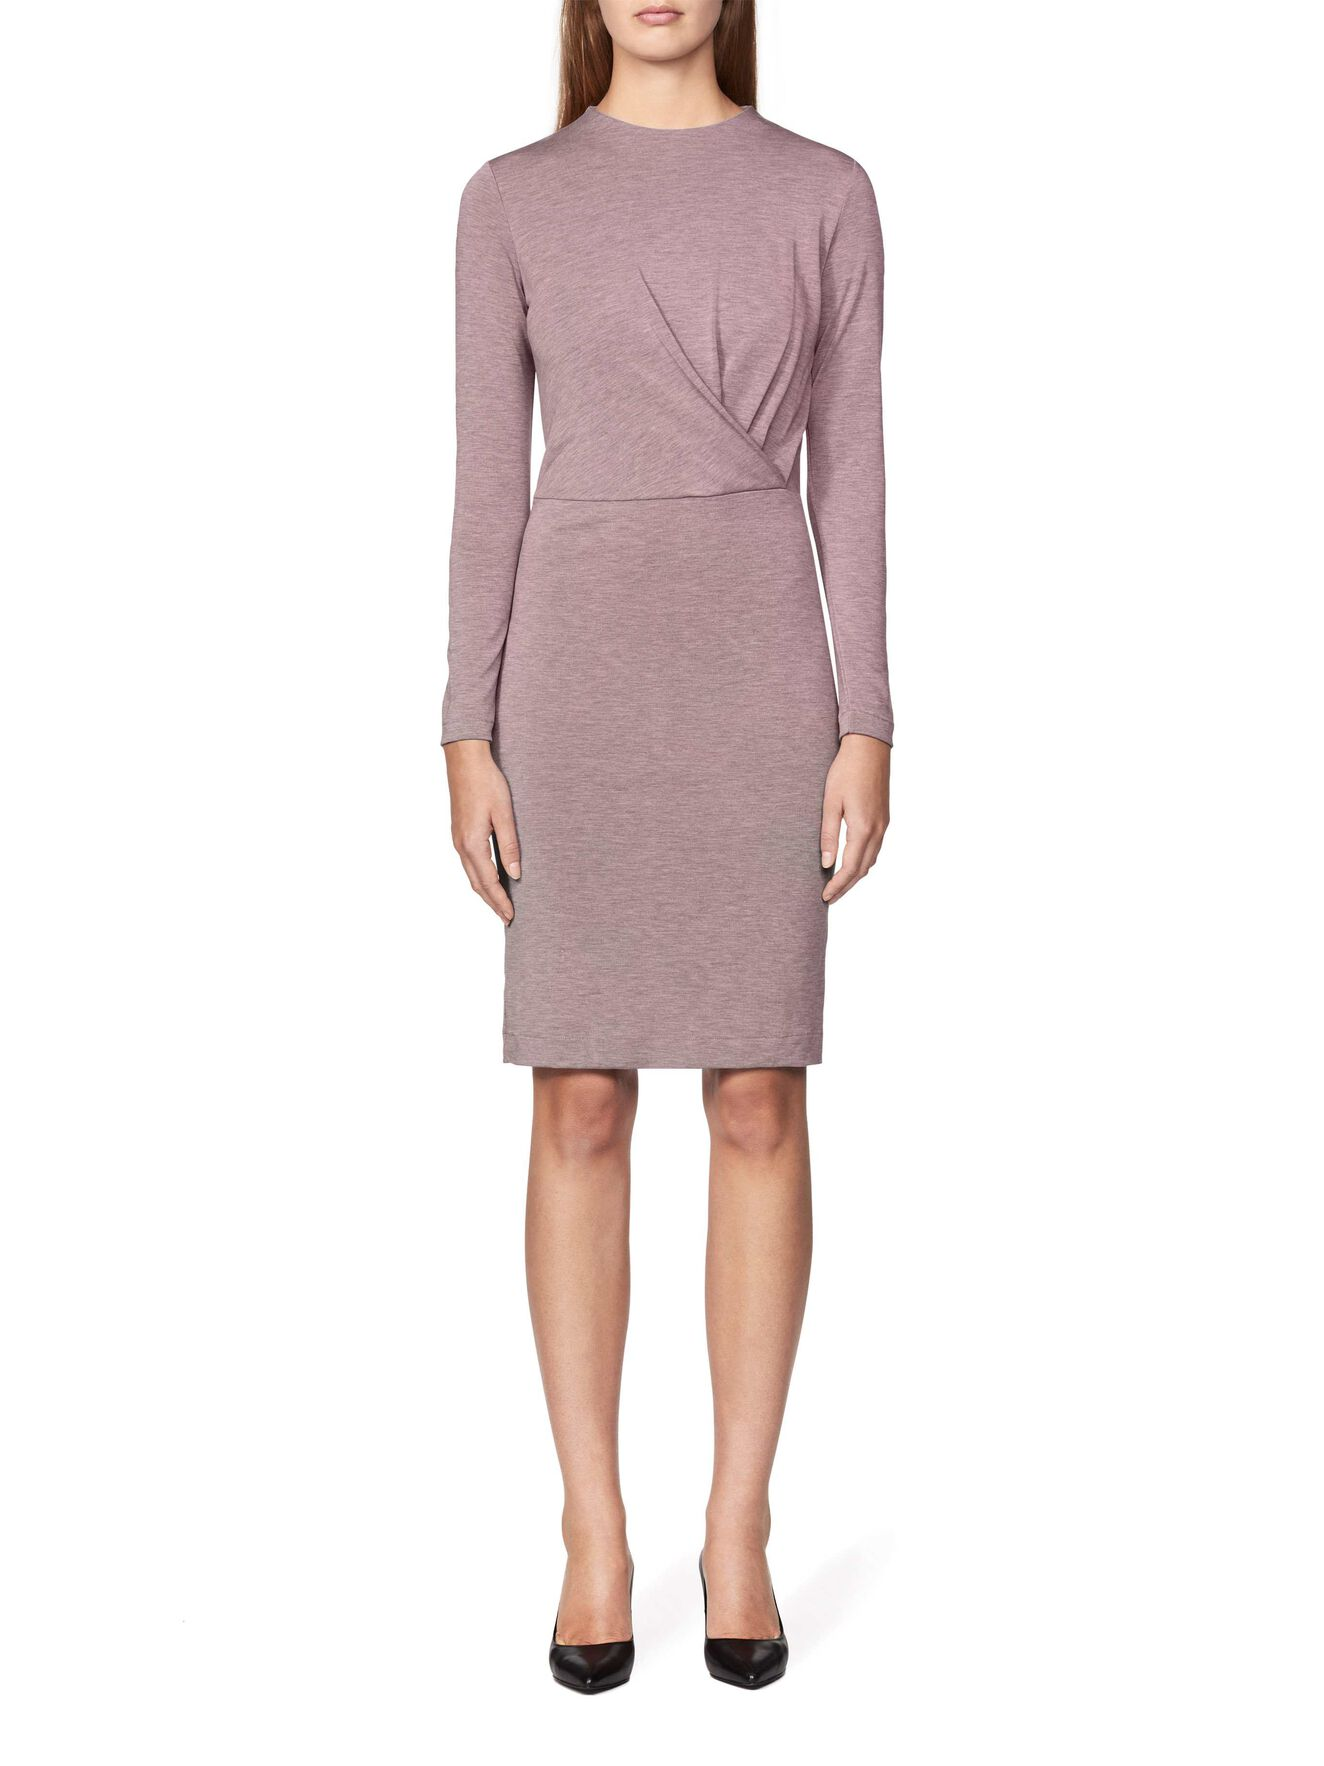 Dafne Dress in Mellow Mulberry from Tiger of Sweden